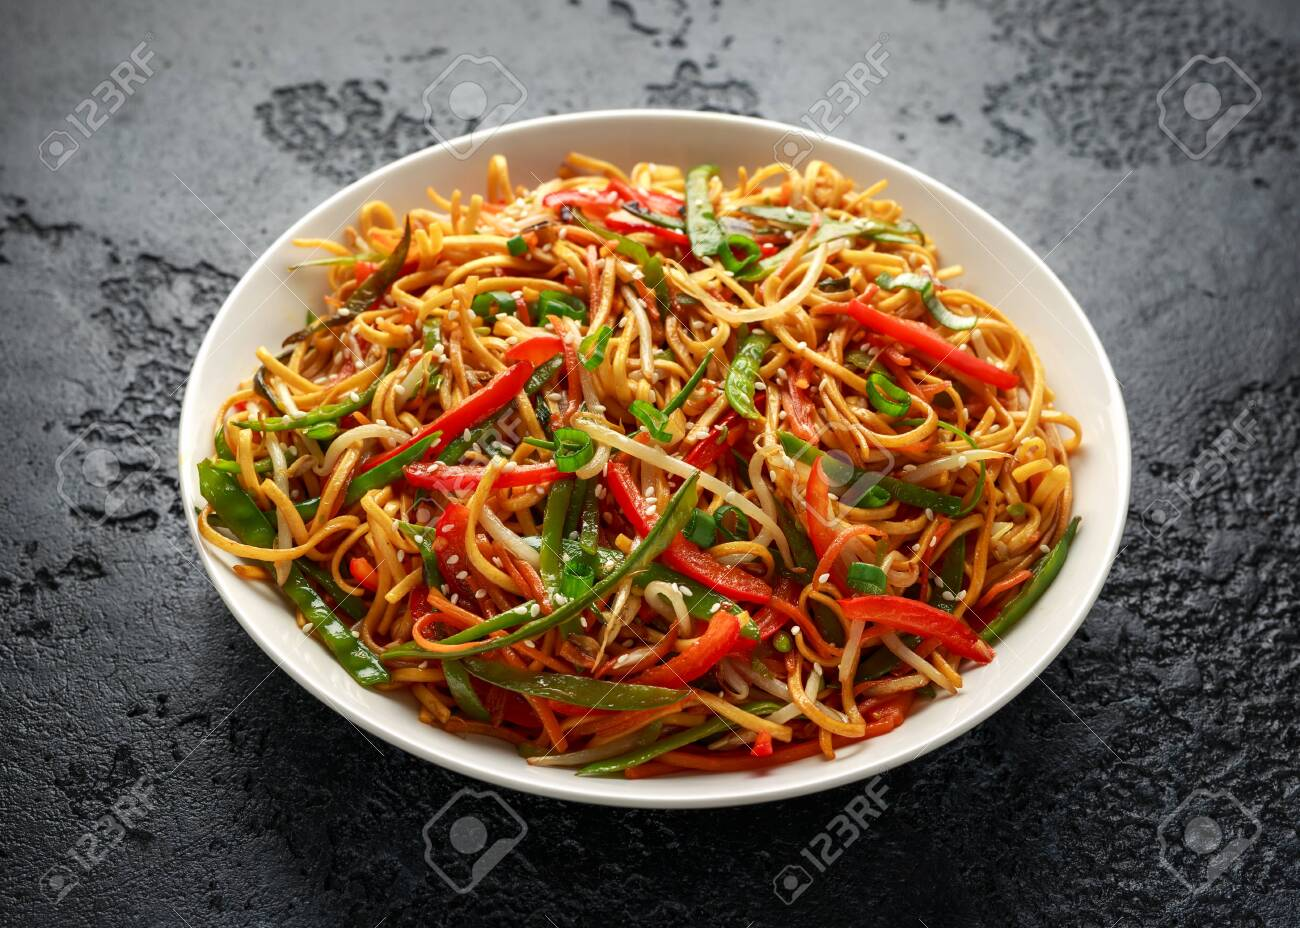 Chow mein, noodles and vegetables dish with wooden chopsticks - 123674904